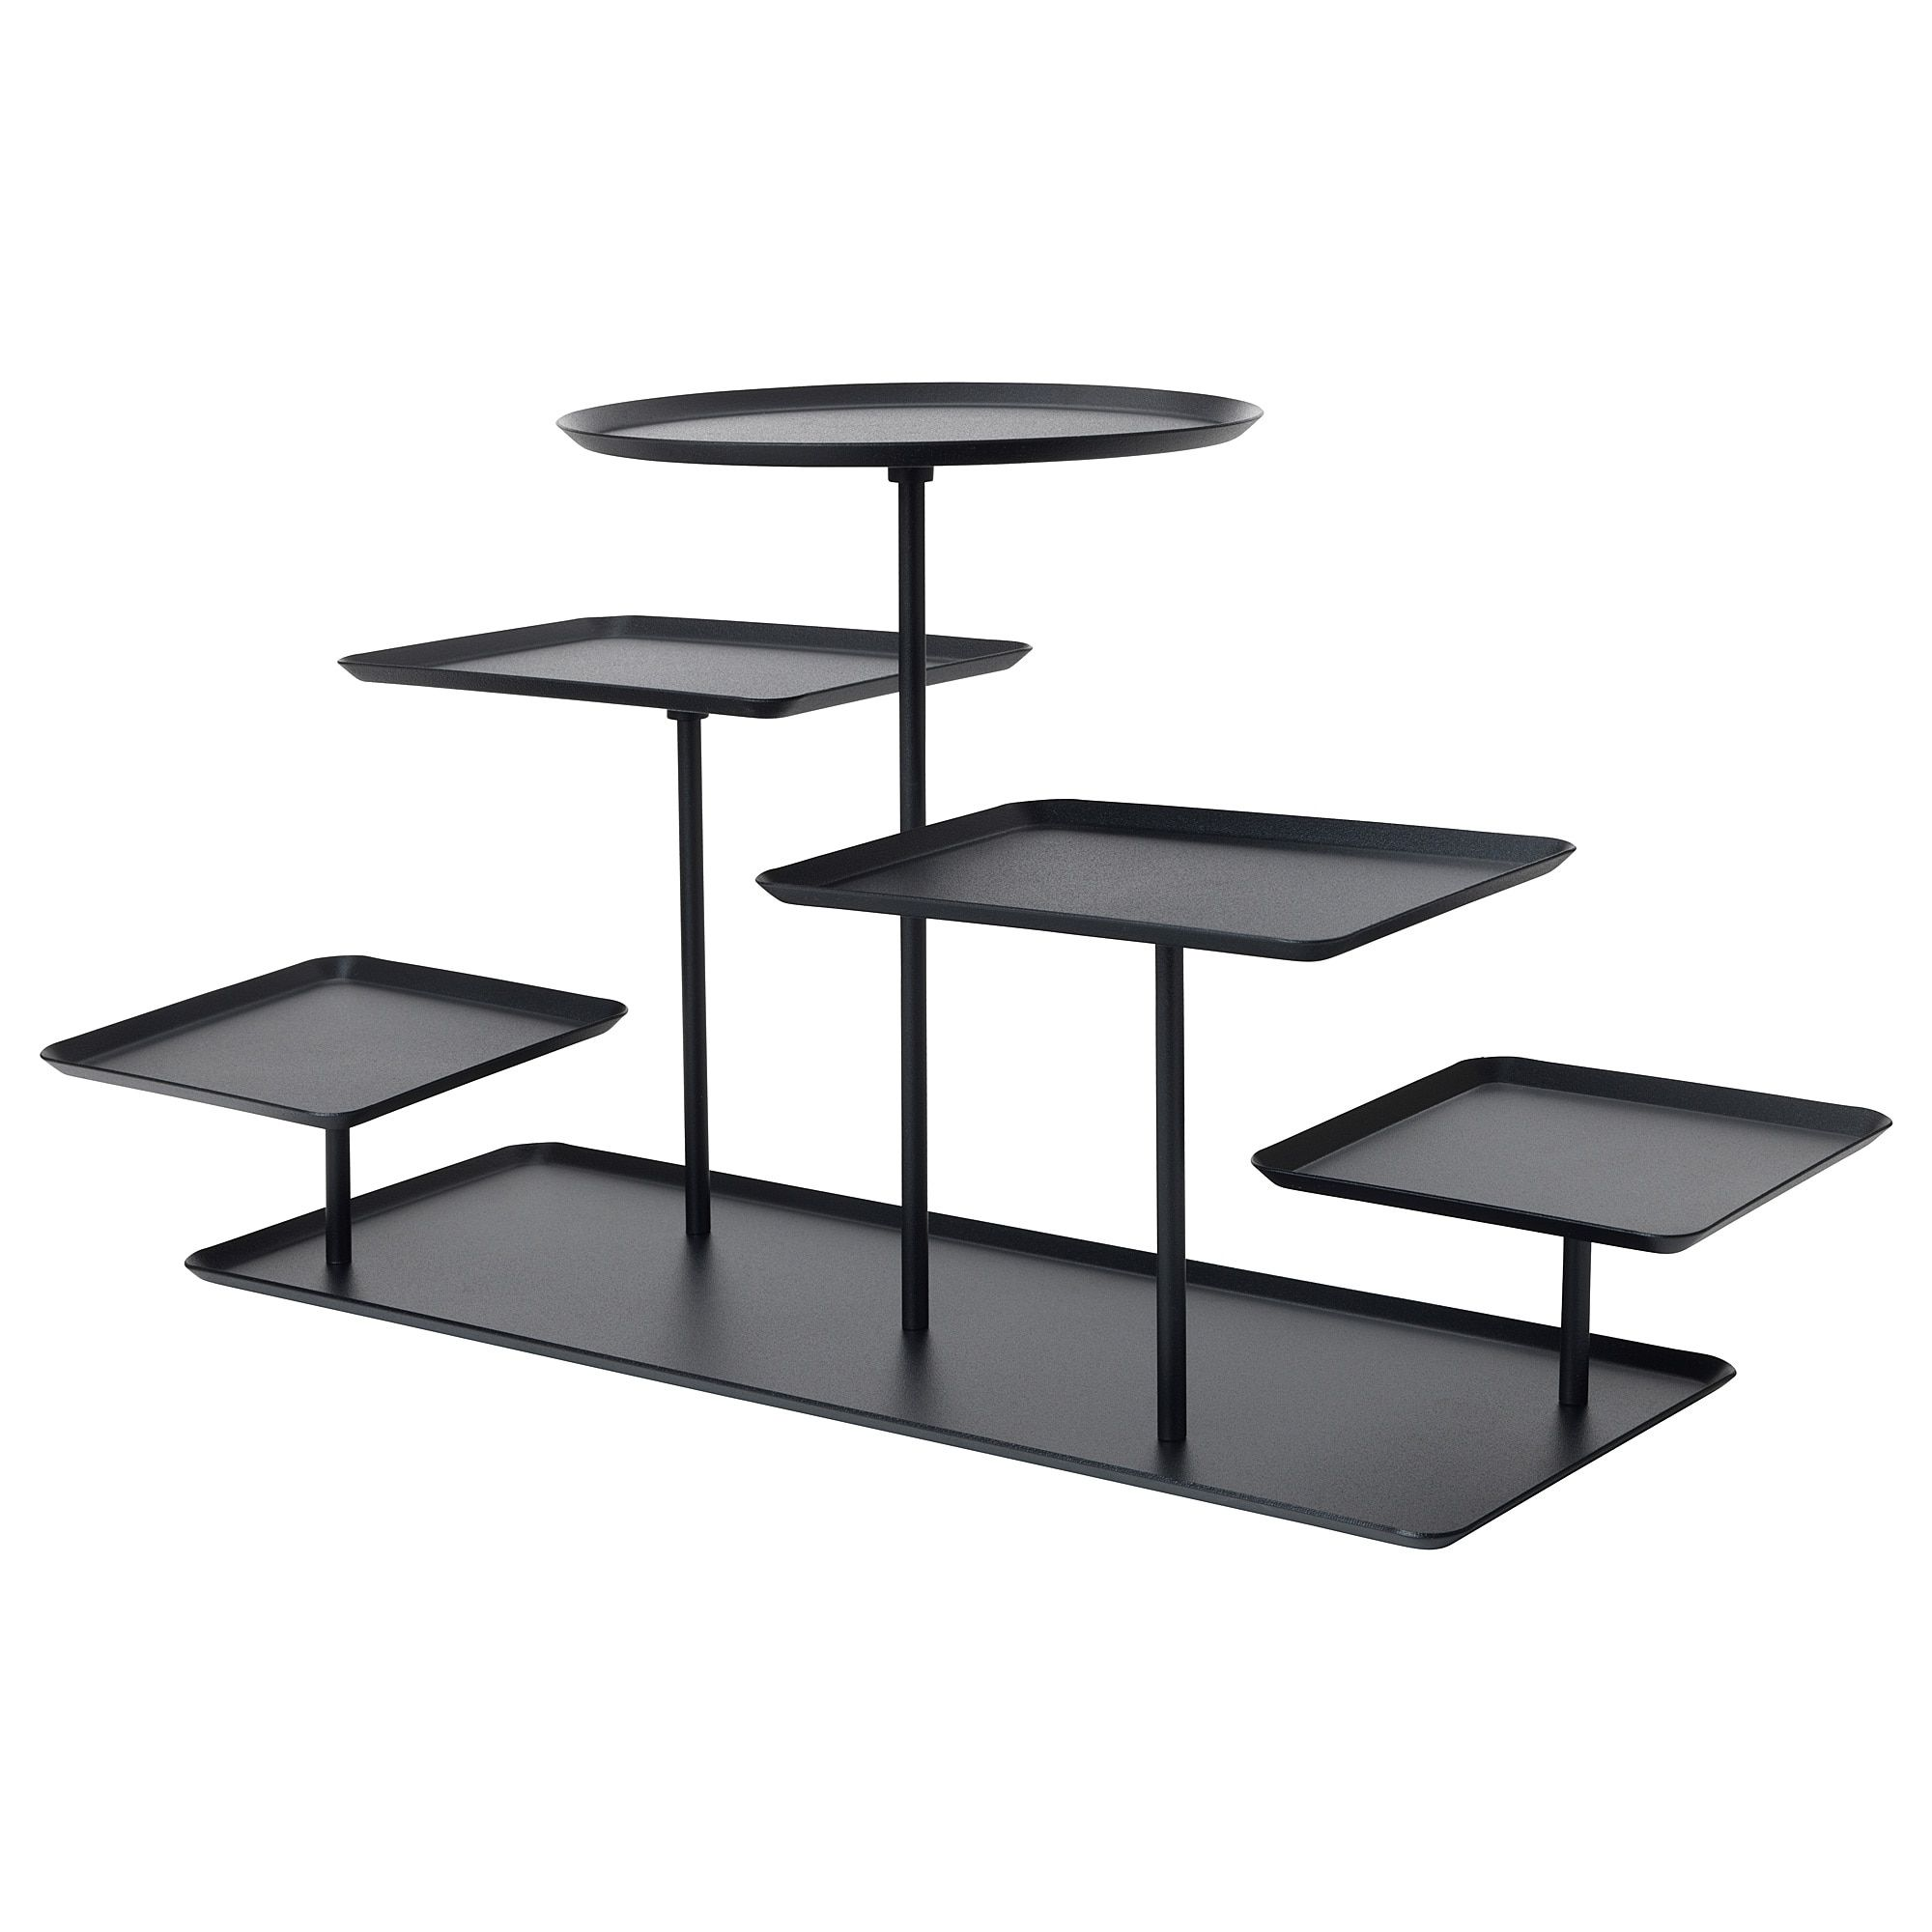 Ikea Sammanhang Black Display Stand Furniture Decor In